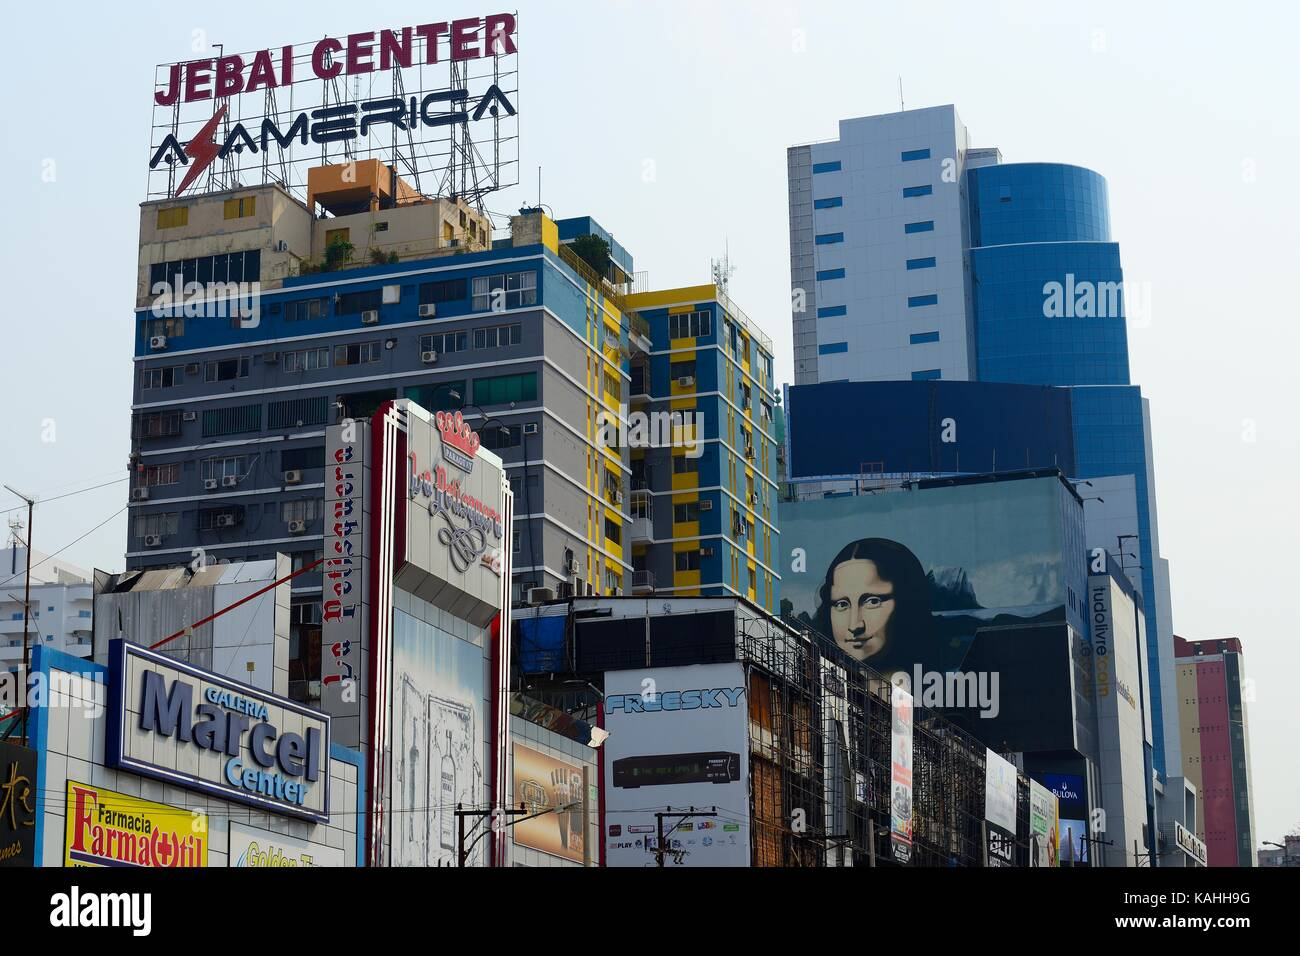 Advertising signs on high-rise facades, Ciudad del Este, Alto Paraná, Paraguay - Stock Image